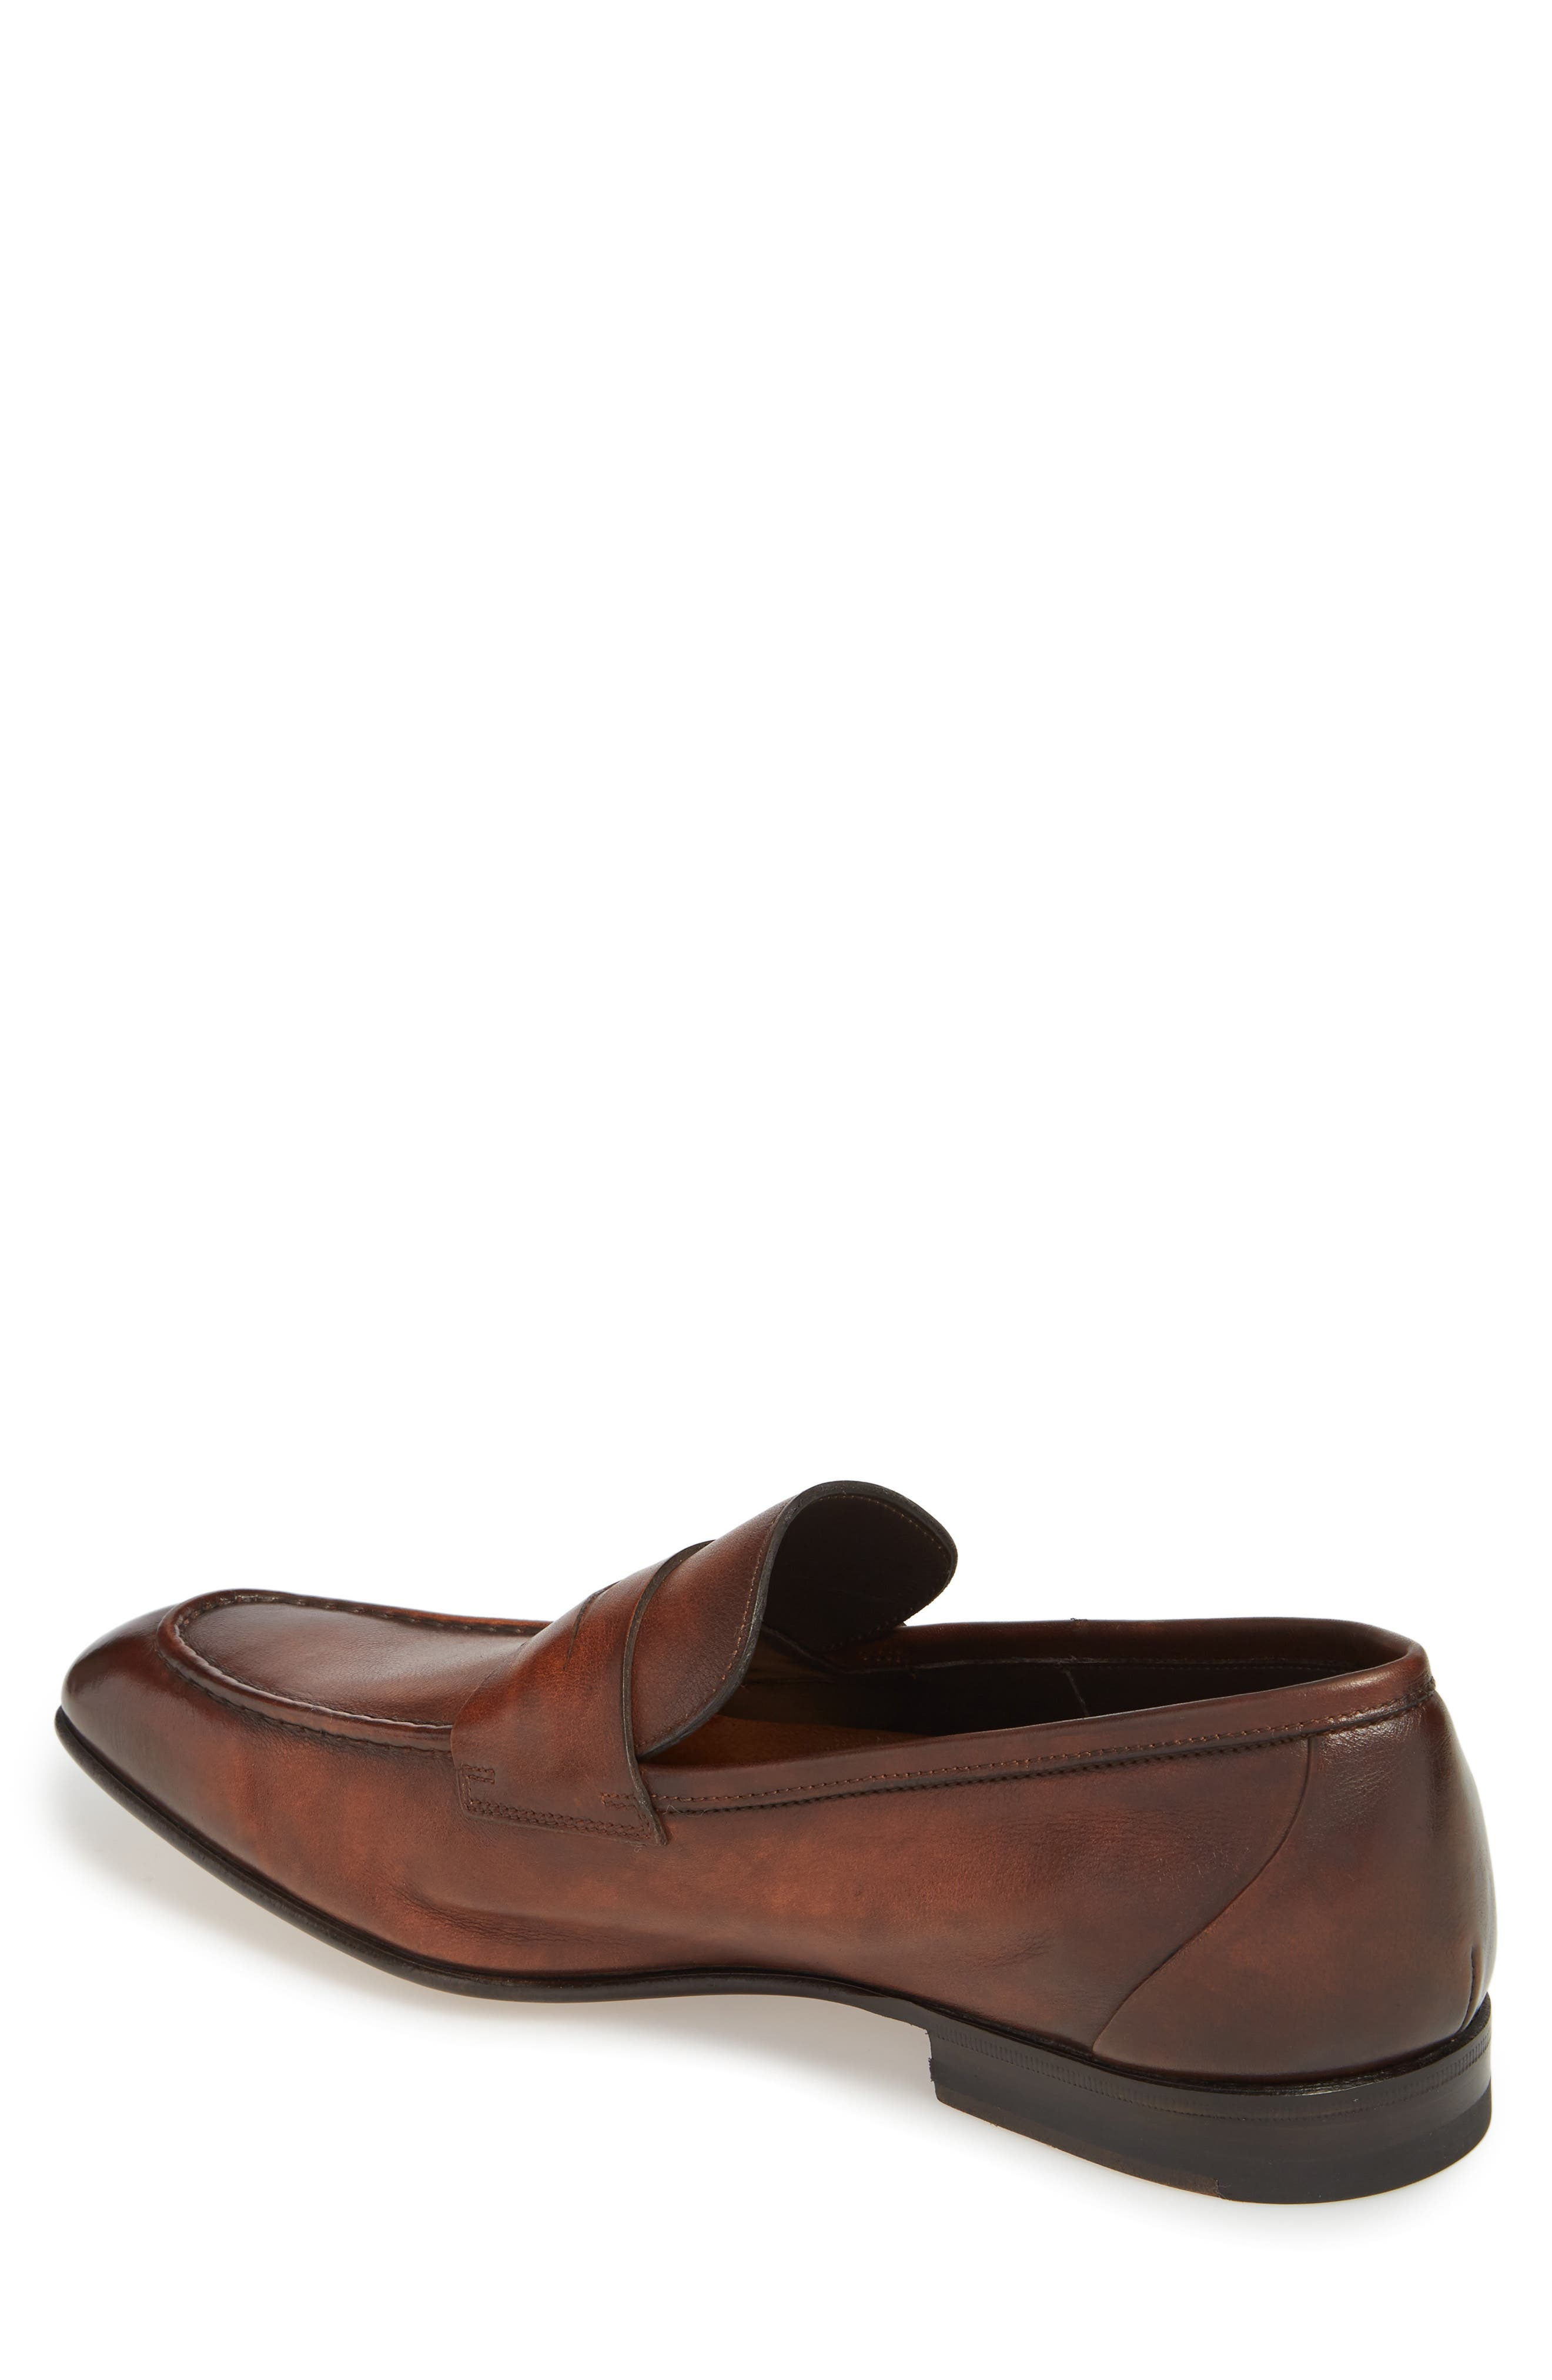 Gannon Penny Loafer,                             Alternate thumbnail 2, color,                             TAN